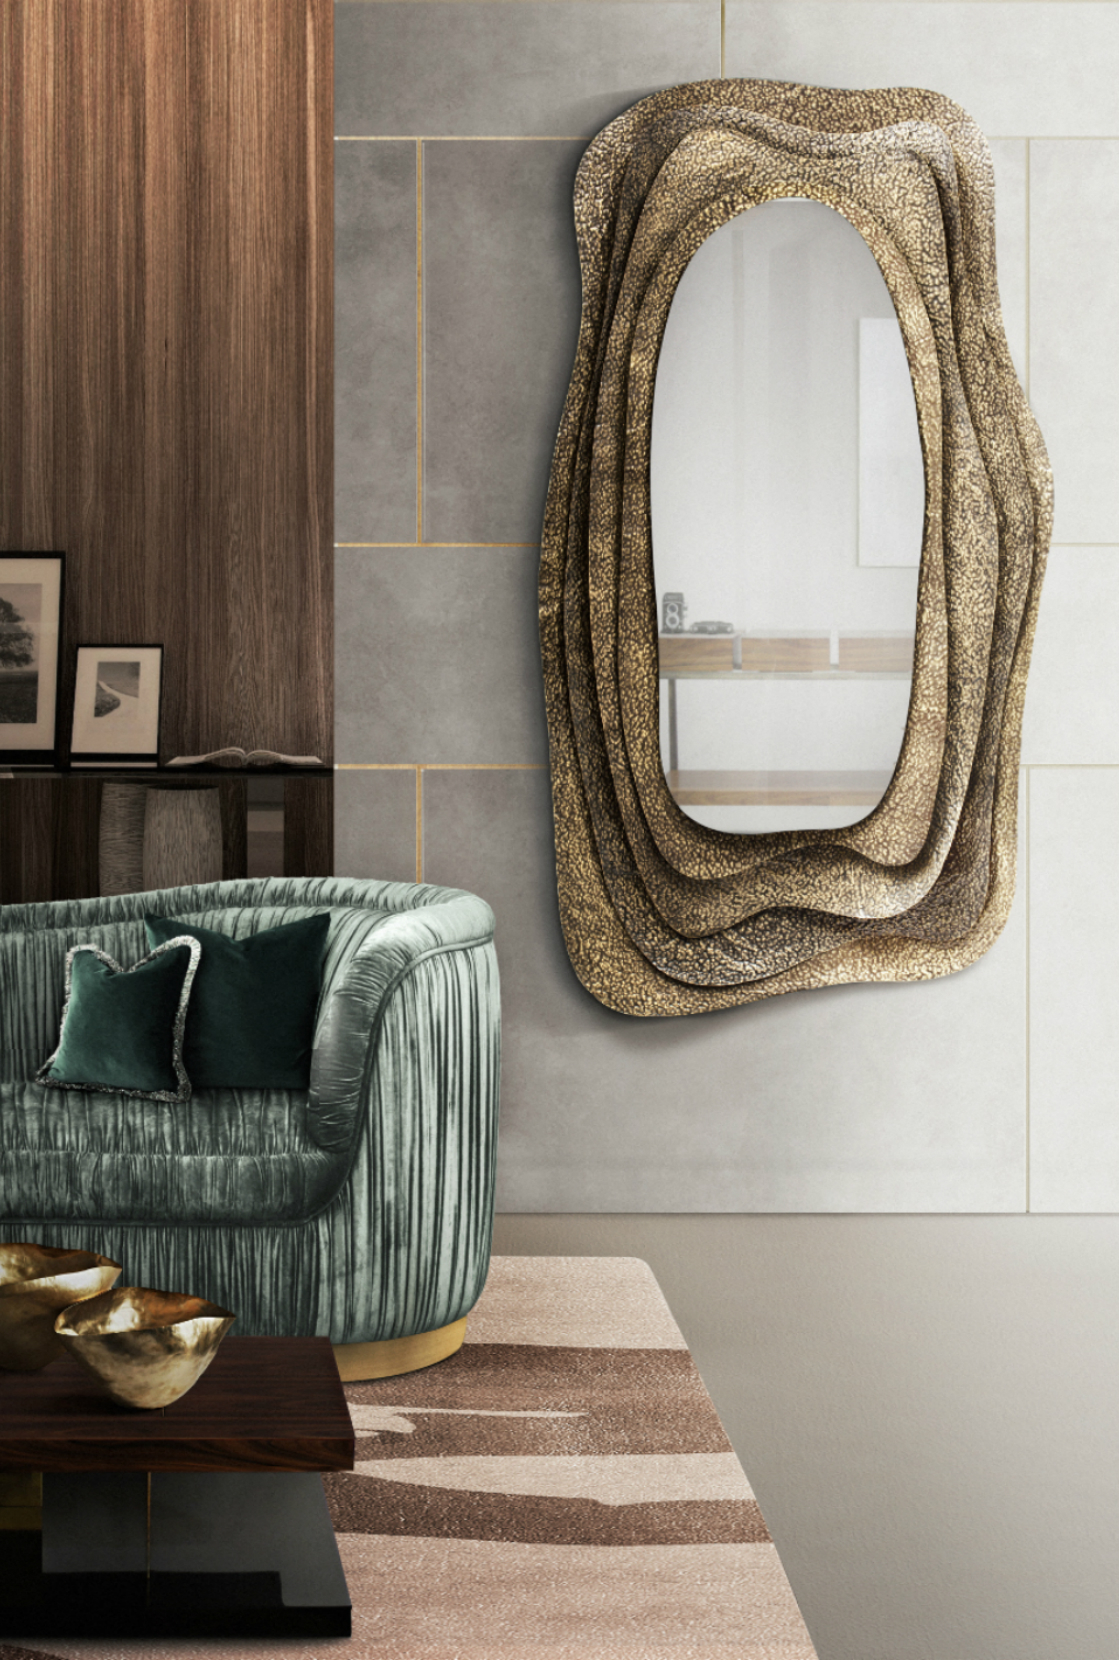 How To Use Raw Materials In A Luxury Décor  raw materials How To Use Raw Materials In A Luxury Decor  How To Use Raw Materials In A Luxury D  cor 6